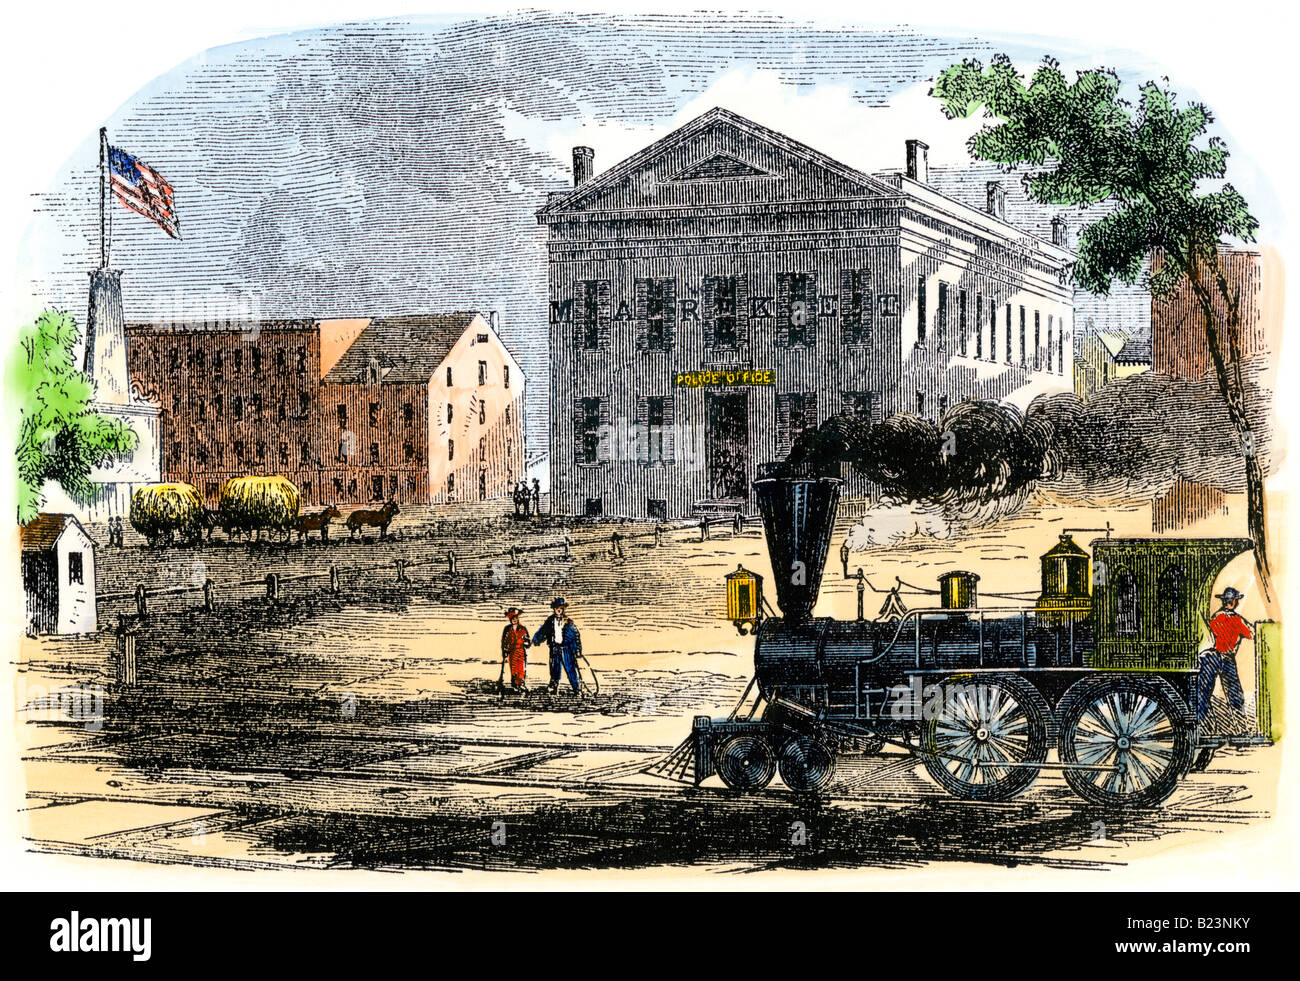 Steam locomotive in Syracuse New York 1850s. Hand-colored woodcut - Stock Image